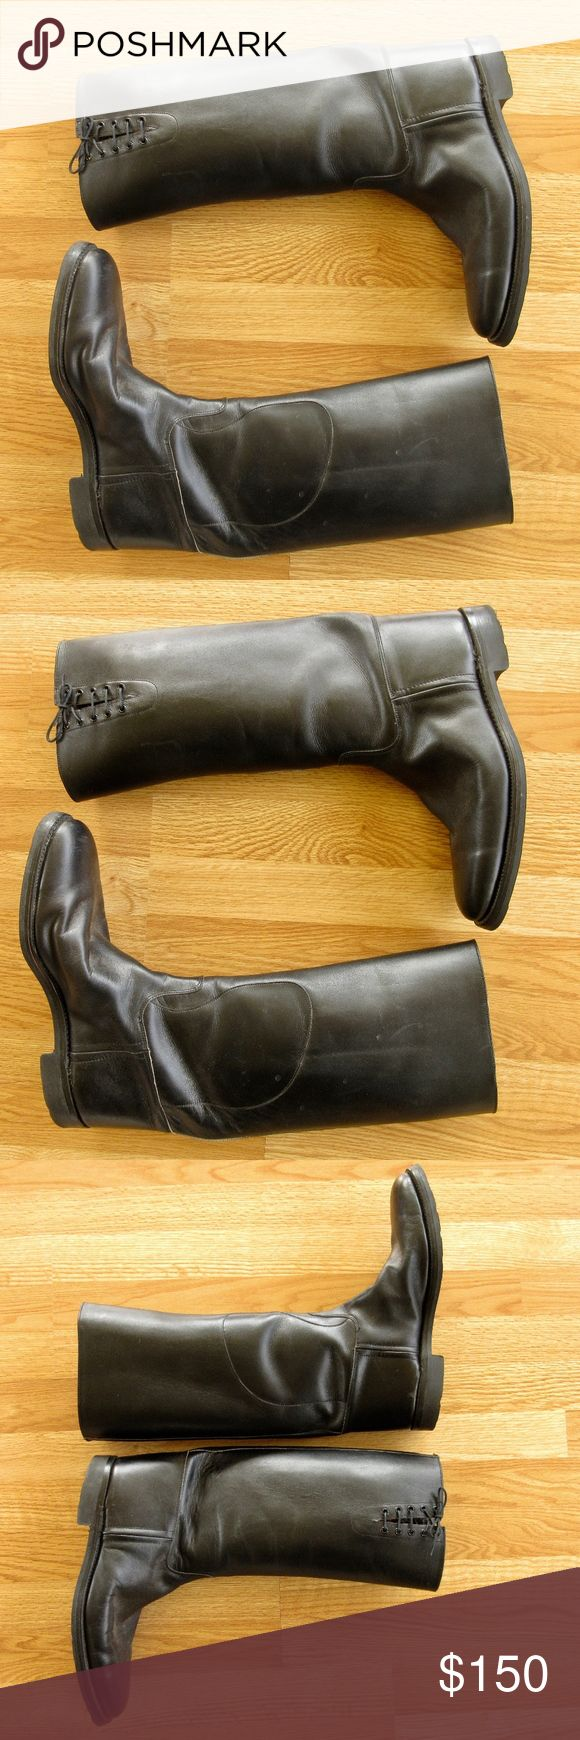 """Vintage Men's Equestrian Boots Made in England, 13 Simply the best, vintage men's equestrian / riding boots.  High quality.  Very well made.  Lace up calf.  Pull on style.  All leather uppers.    Stamped on inside, """"Made in England, Size 13"""".  Measures 13.5"""" long from heel to toe on outside of sole.  Ball measures 4.5"""".  Excellent condition with very little wear.  Dressage ready!  Stamped on sole:  """"The Medway, Dainite, Bar Sole, Made in England"""". Vintage Made in England Shoes Boots"""